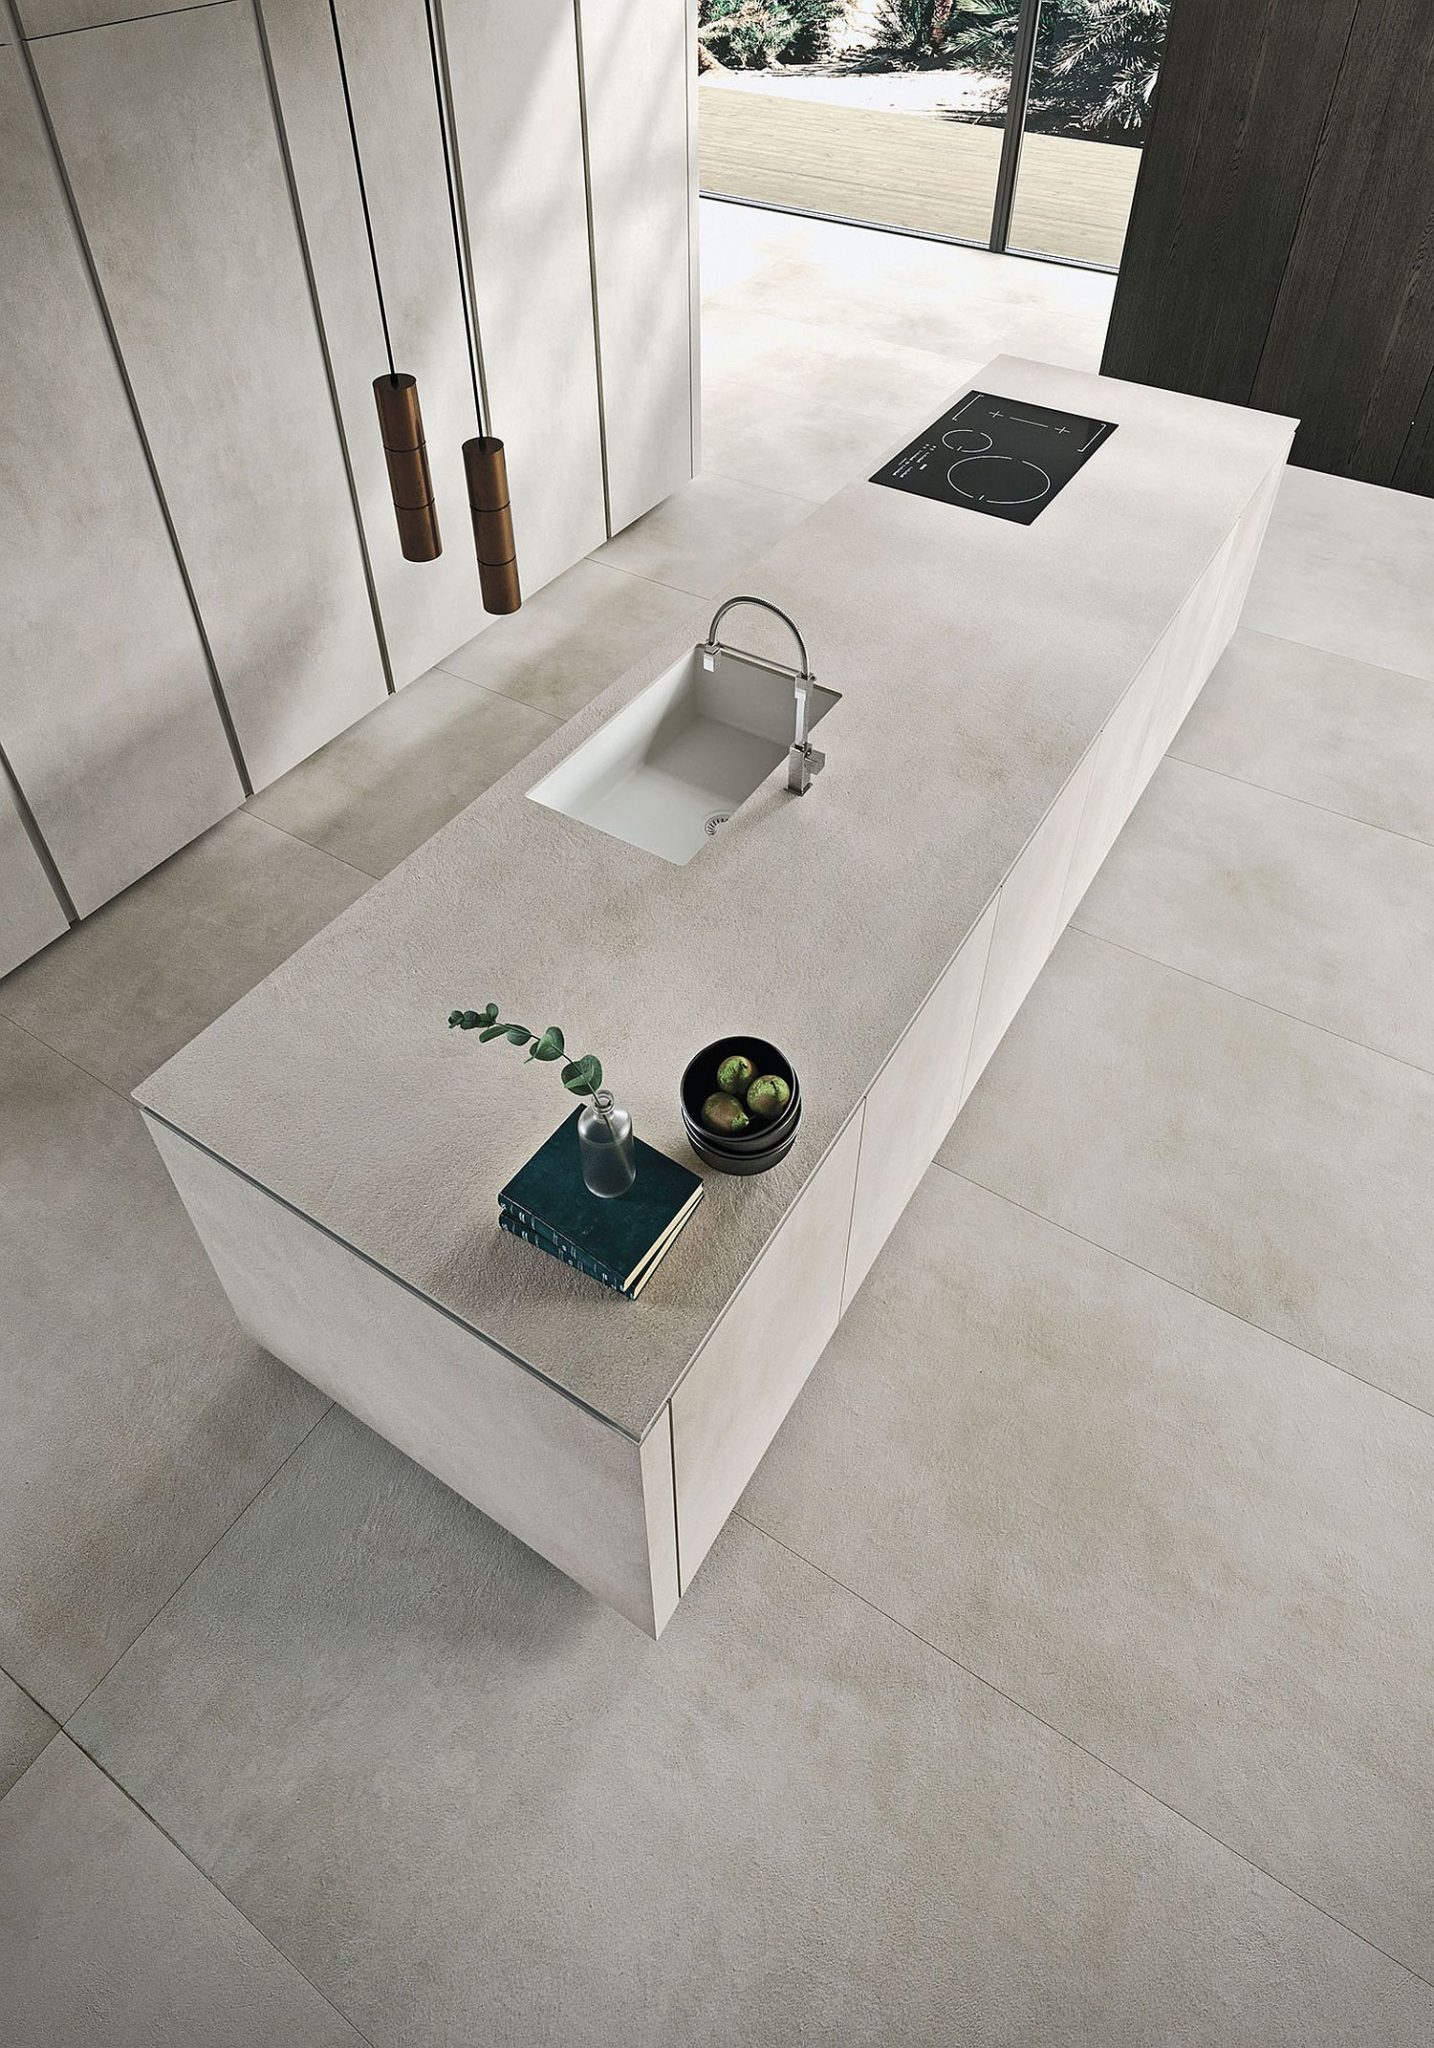 Textured finish of the kitchen island sets it apart visually